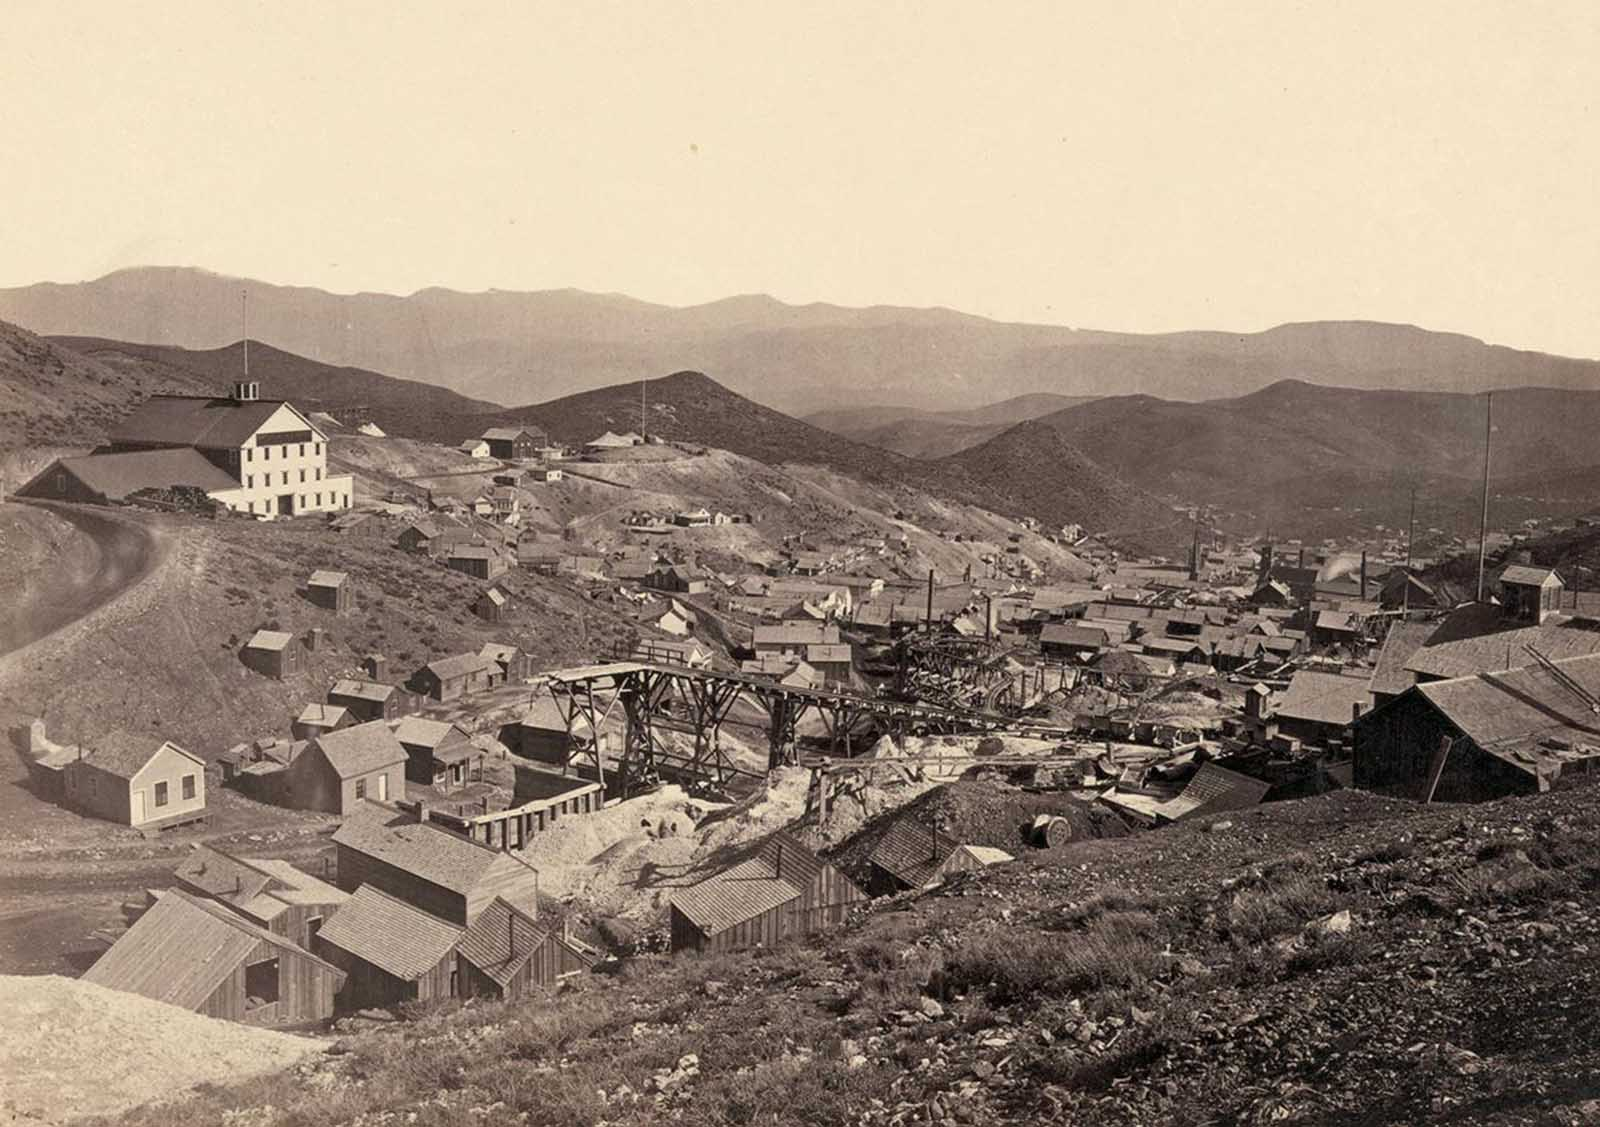 The mining town of Gold Hill, just south of Virginia City, Nevada, in 1867.